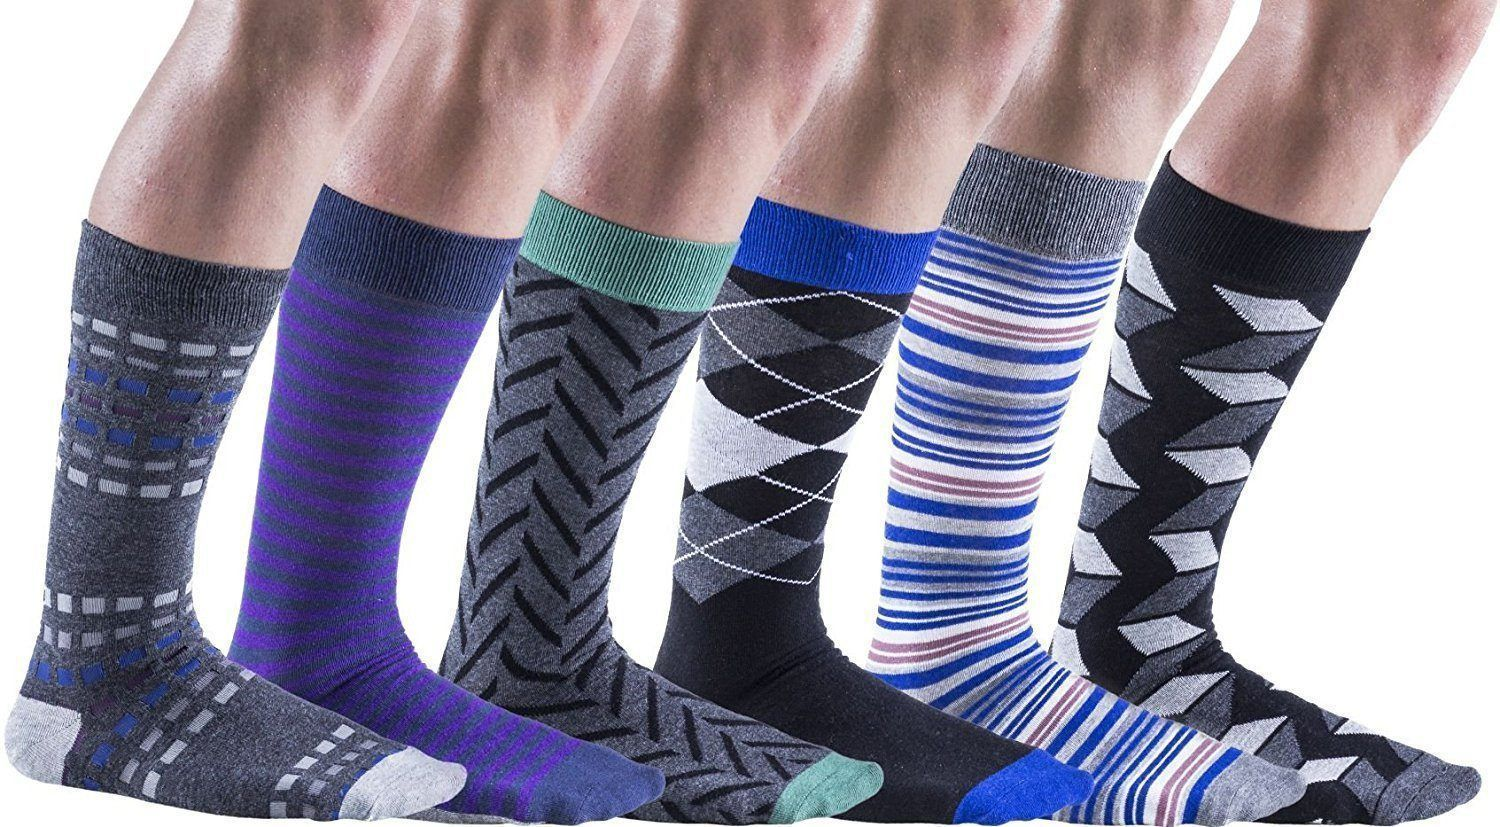 Purple dress socks  MENS COTTON DRESS SOCKS Cool socks are hard to come by these